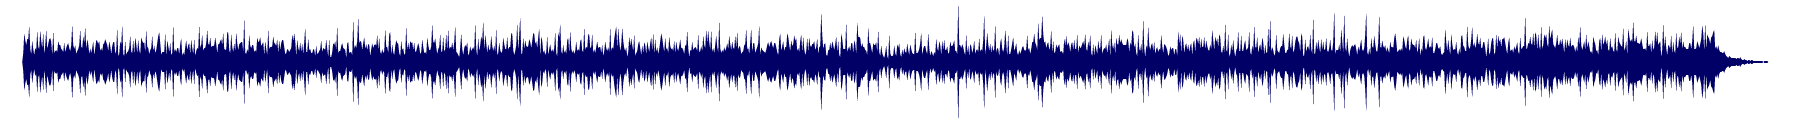 waveform of track #71217